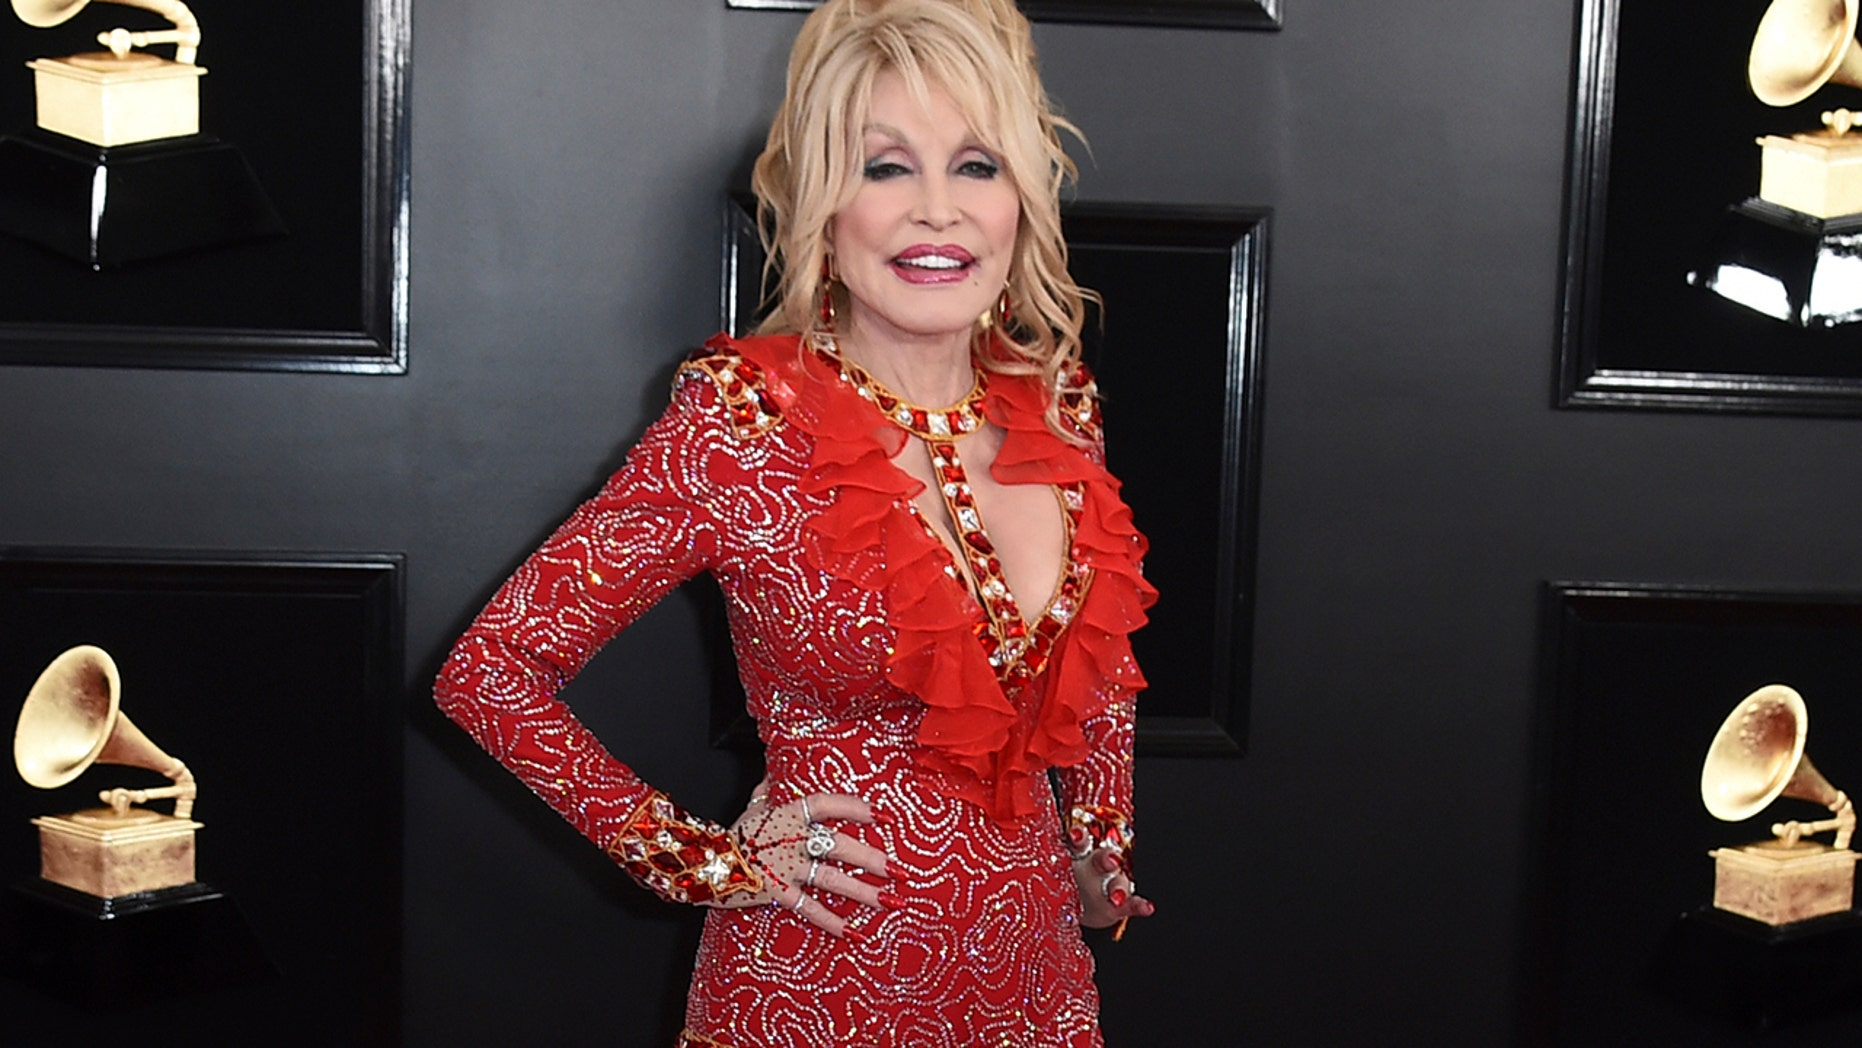 Dolly Parton arrives at the 61st annual Grammy Awards at the Staples Center on Sunday, Feb. 10, 2019, in Los Angeles.